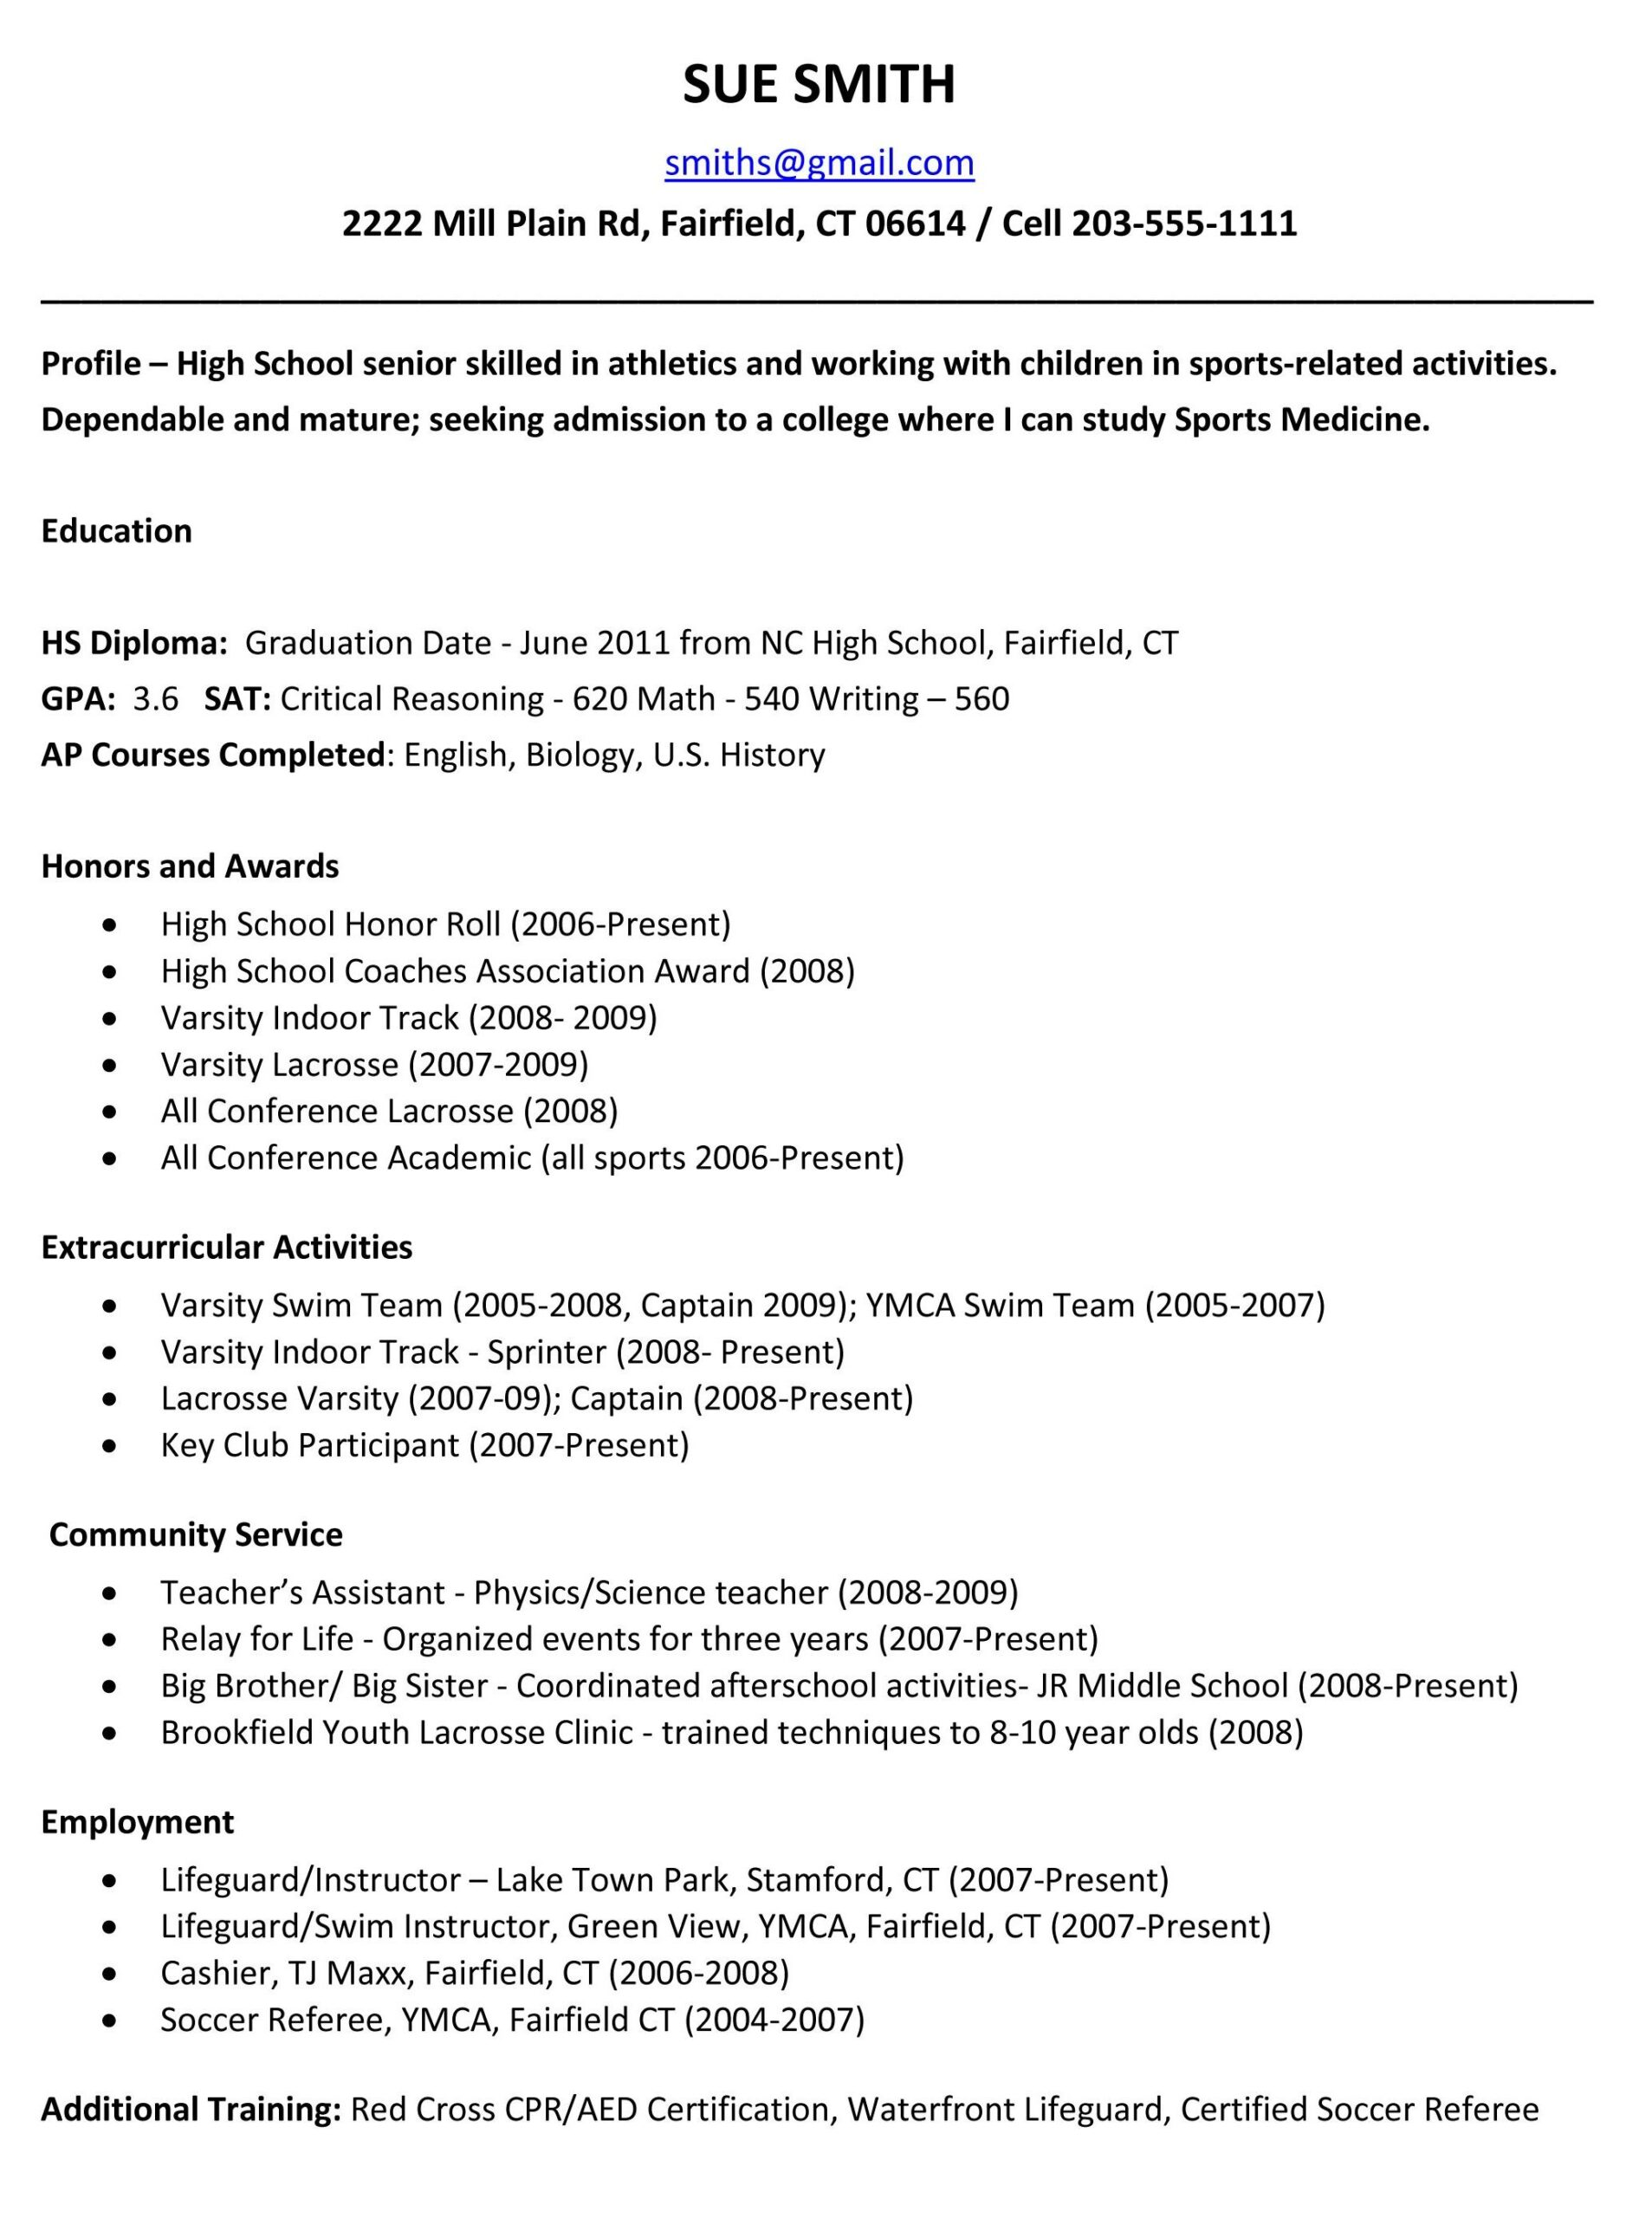 sample resumes high school resume template college application for admissions dialysis Resume High School Resume For College Admissions Template